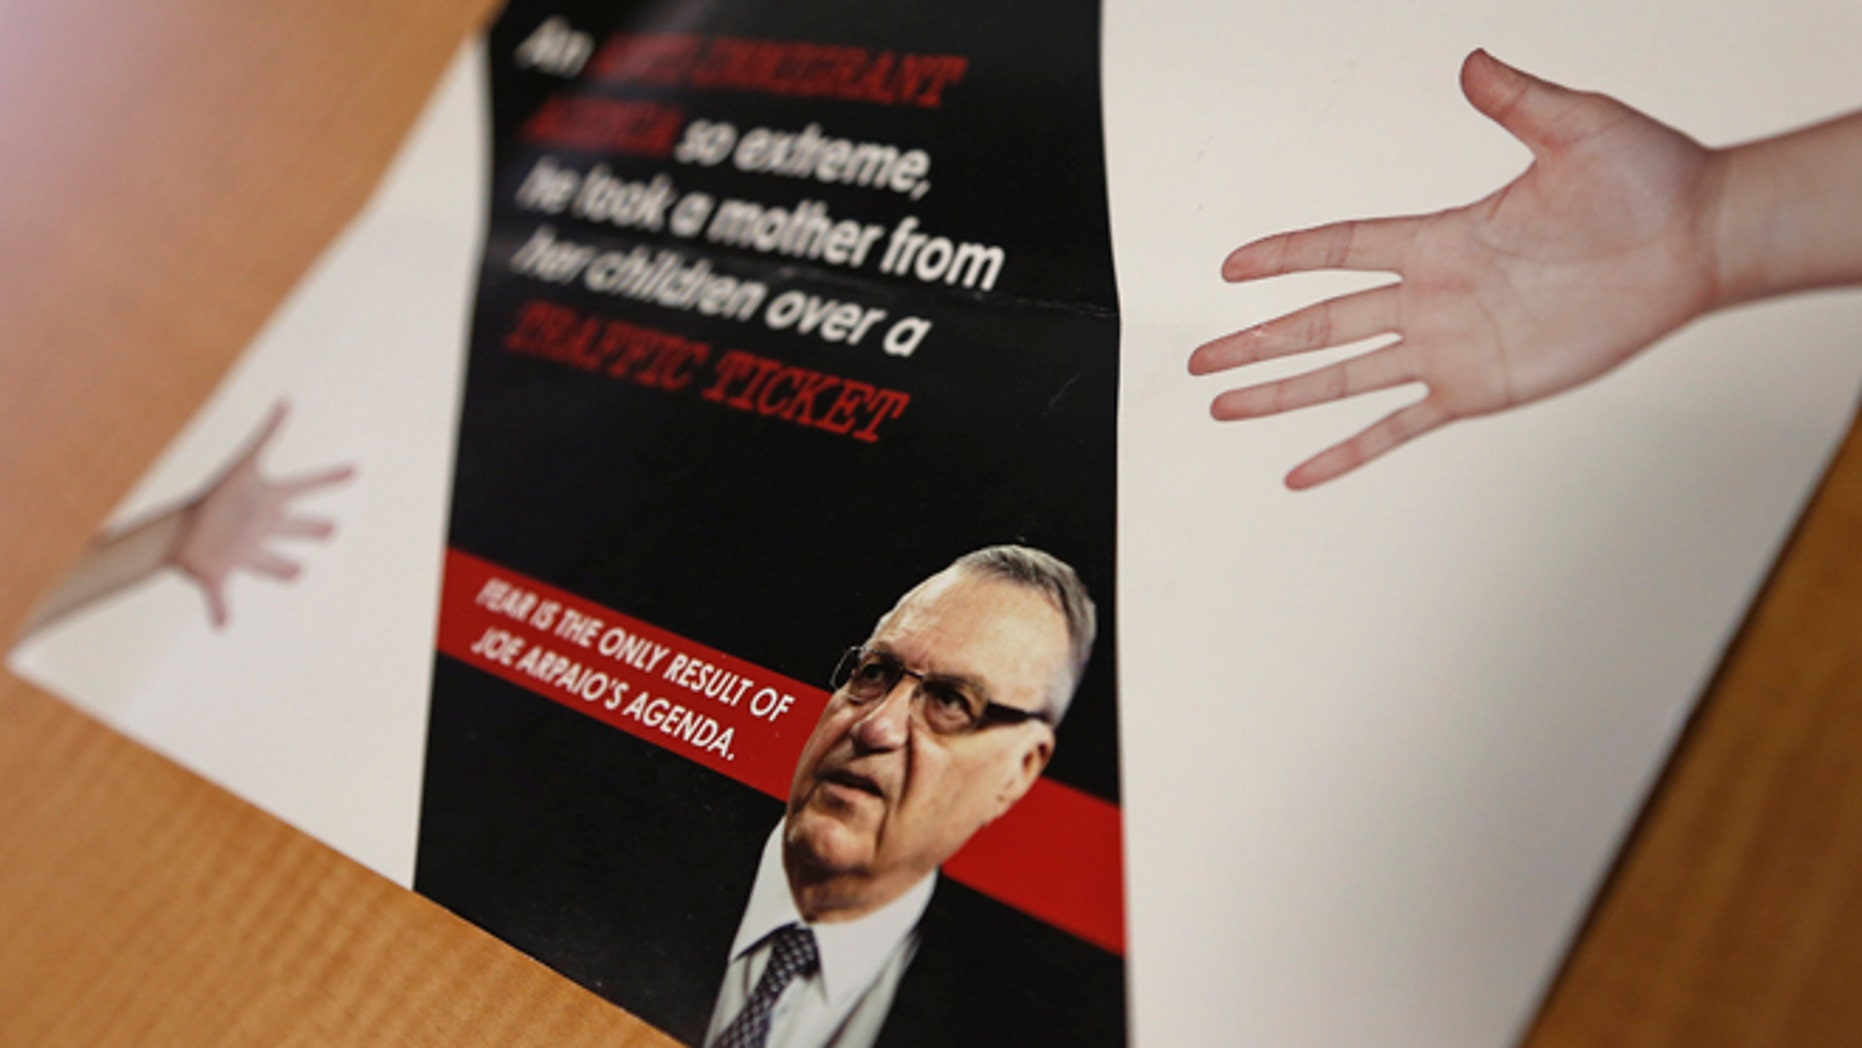 A group backed by the New York hedge fund billionaire George Soros, a longtime bankroller of liberal political causes, is mailing anti-Joe Arpaio fliers to Phoenix-area voters shown here, Tuesday, Sept. 13, 2016, in Phoenix.